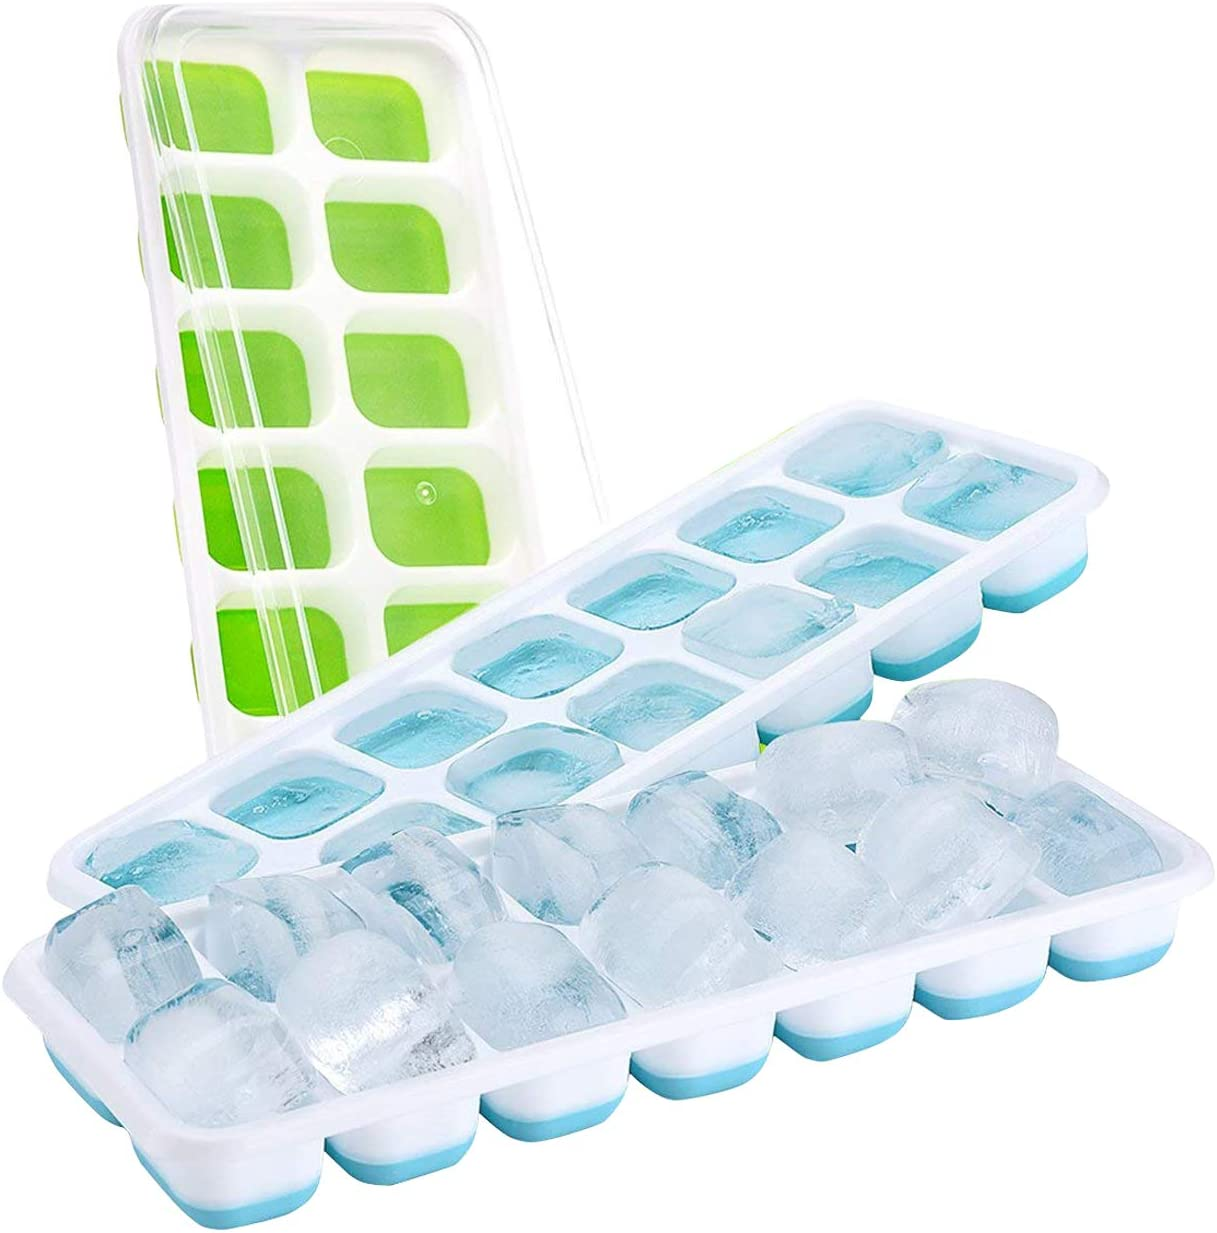 Amian Shop Ice Cube Trays,3 Pack Silicone Ice Cube Tray with Removable Lid,BPA Free,Durable and Dishwasher Safe Easy Release Ice Trays